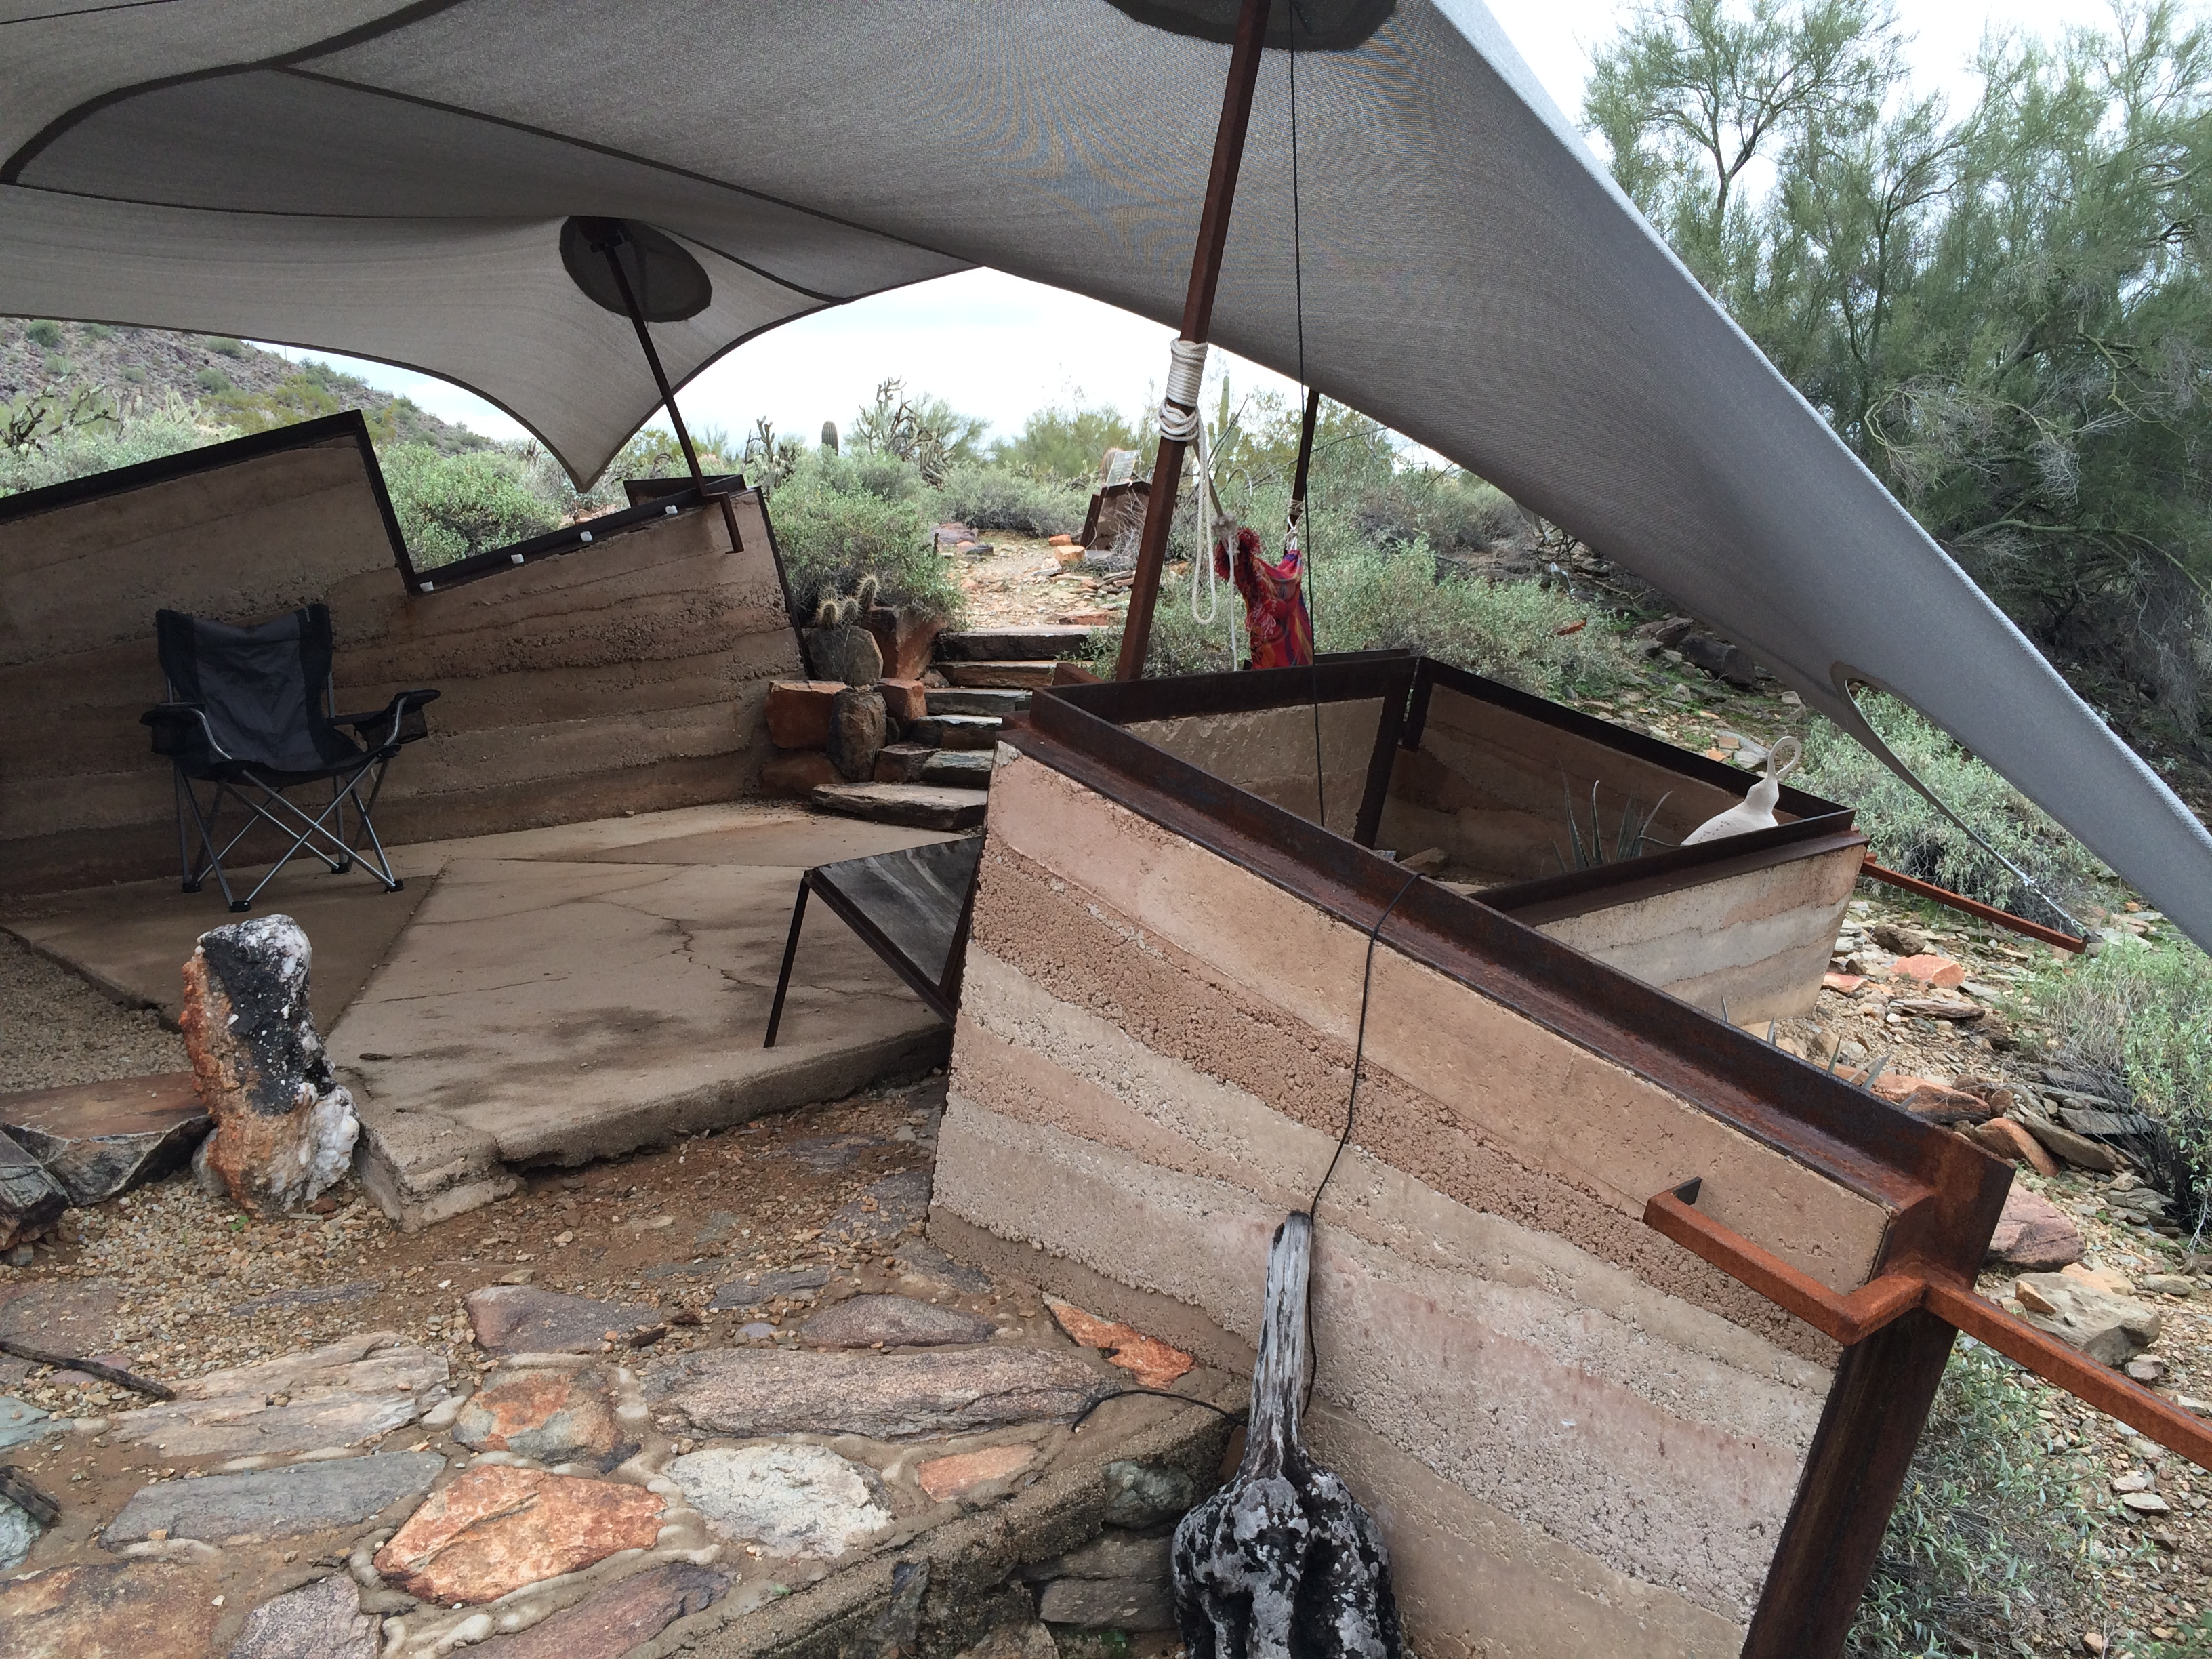 Tent shelter interior. Form inspired by nearby mountain ranges. & The Taliesin West Shelters | MORELAB